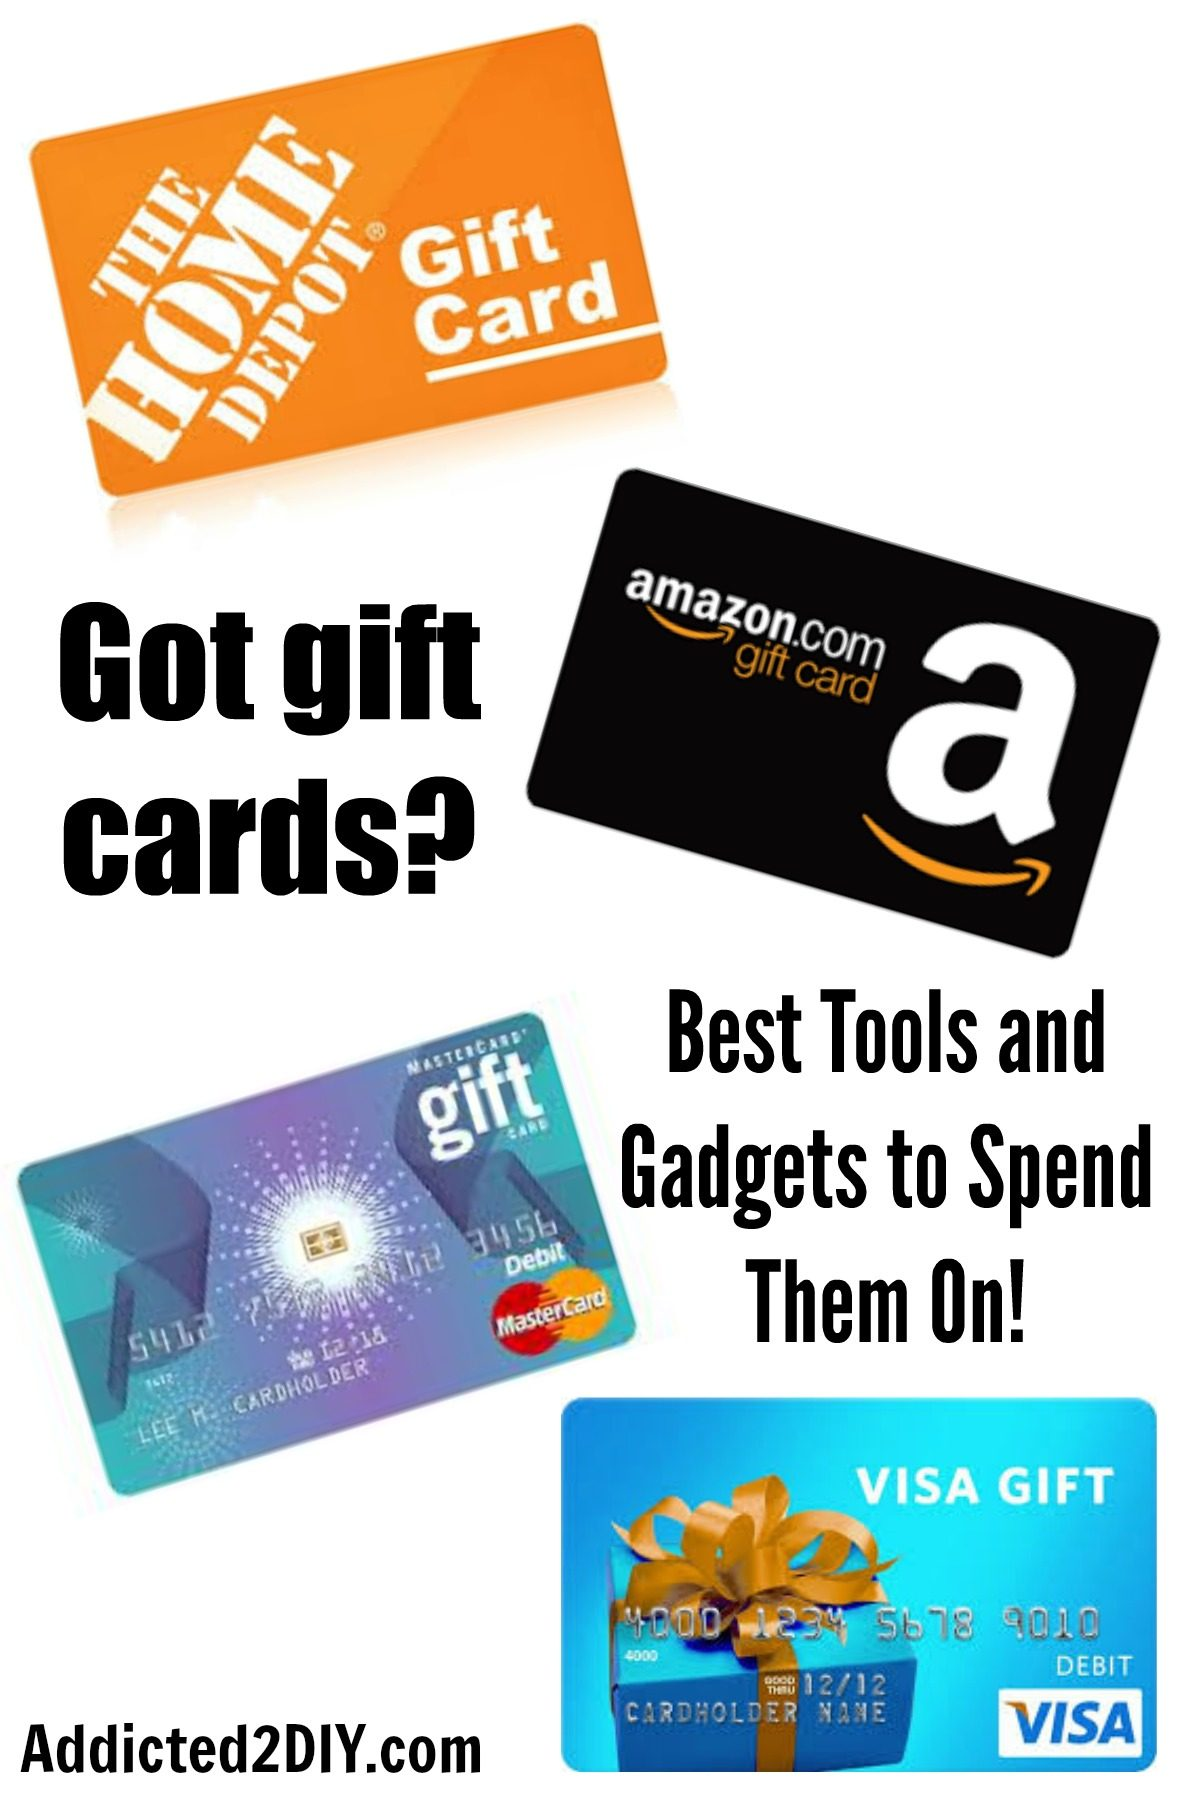 Best Tools To Spend Your Christmas Gift Cards On - Addicted 2 DIY